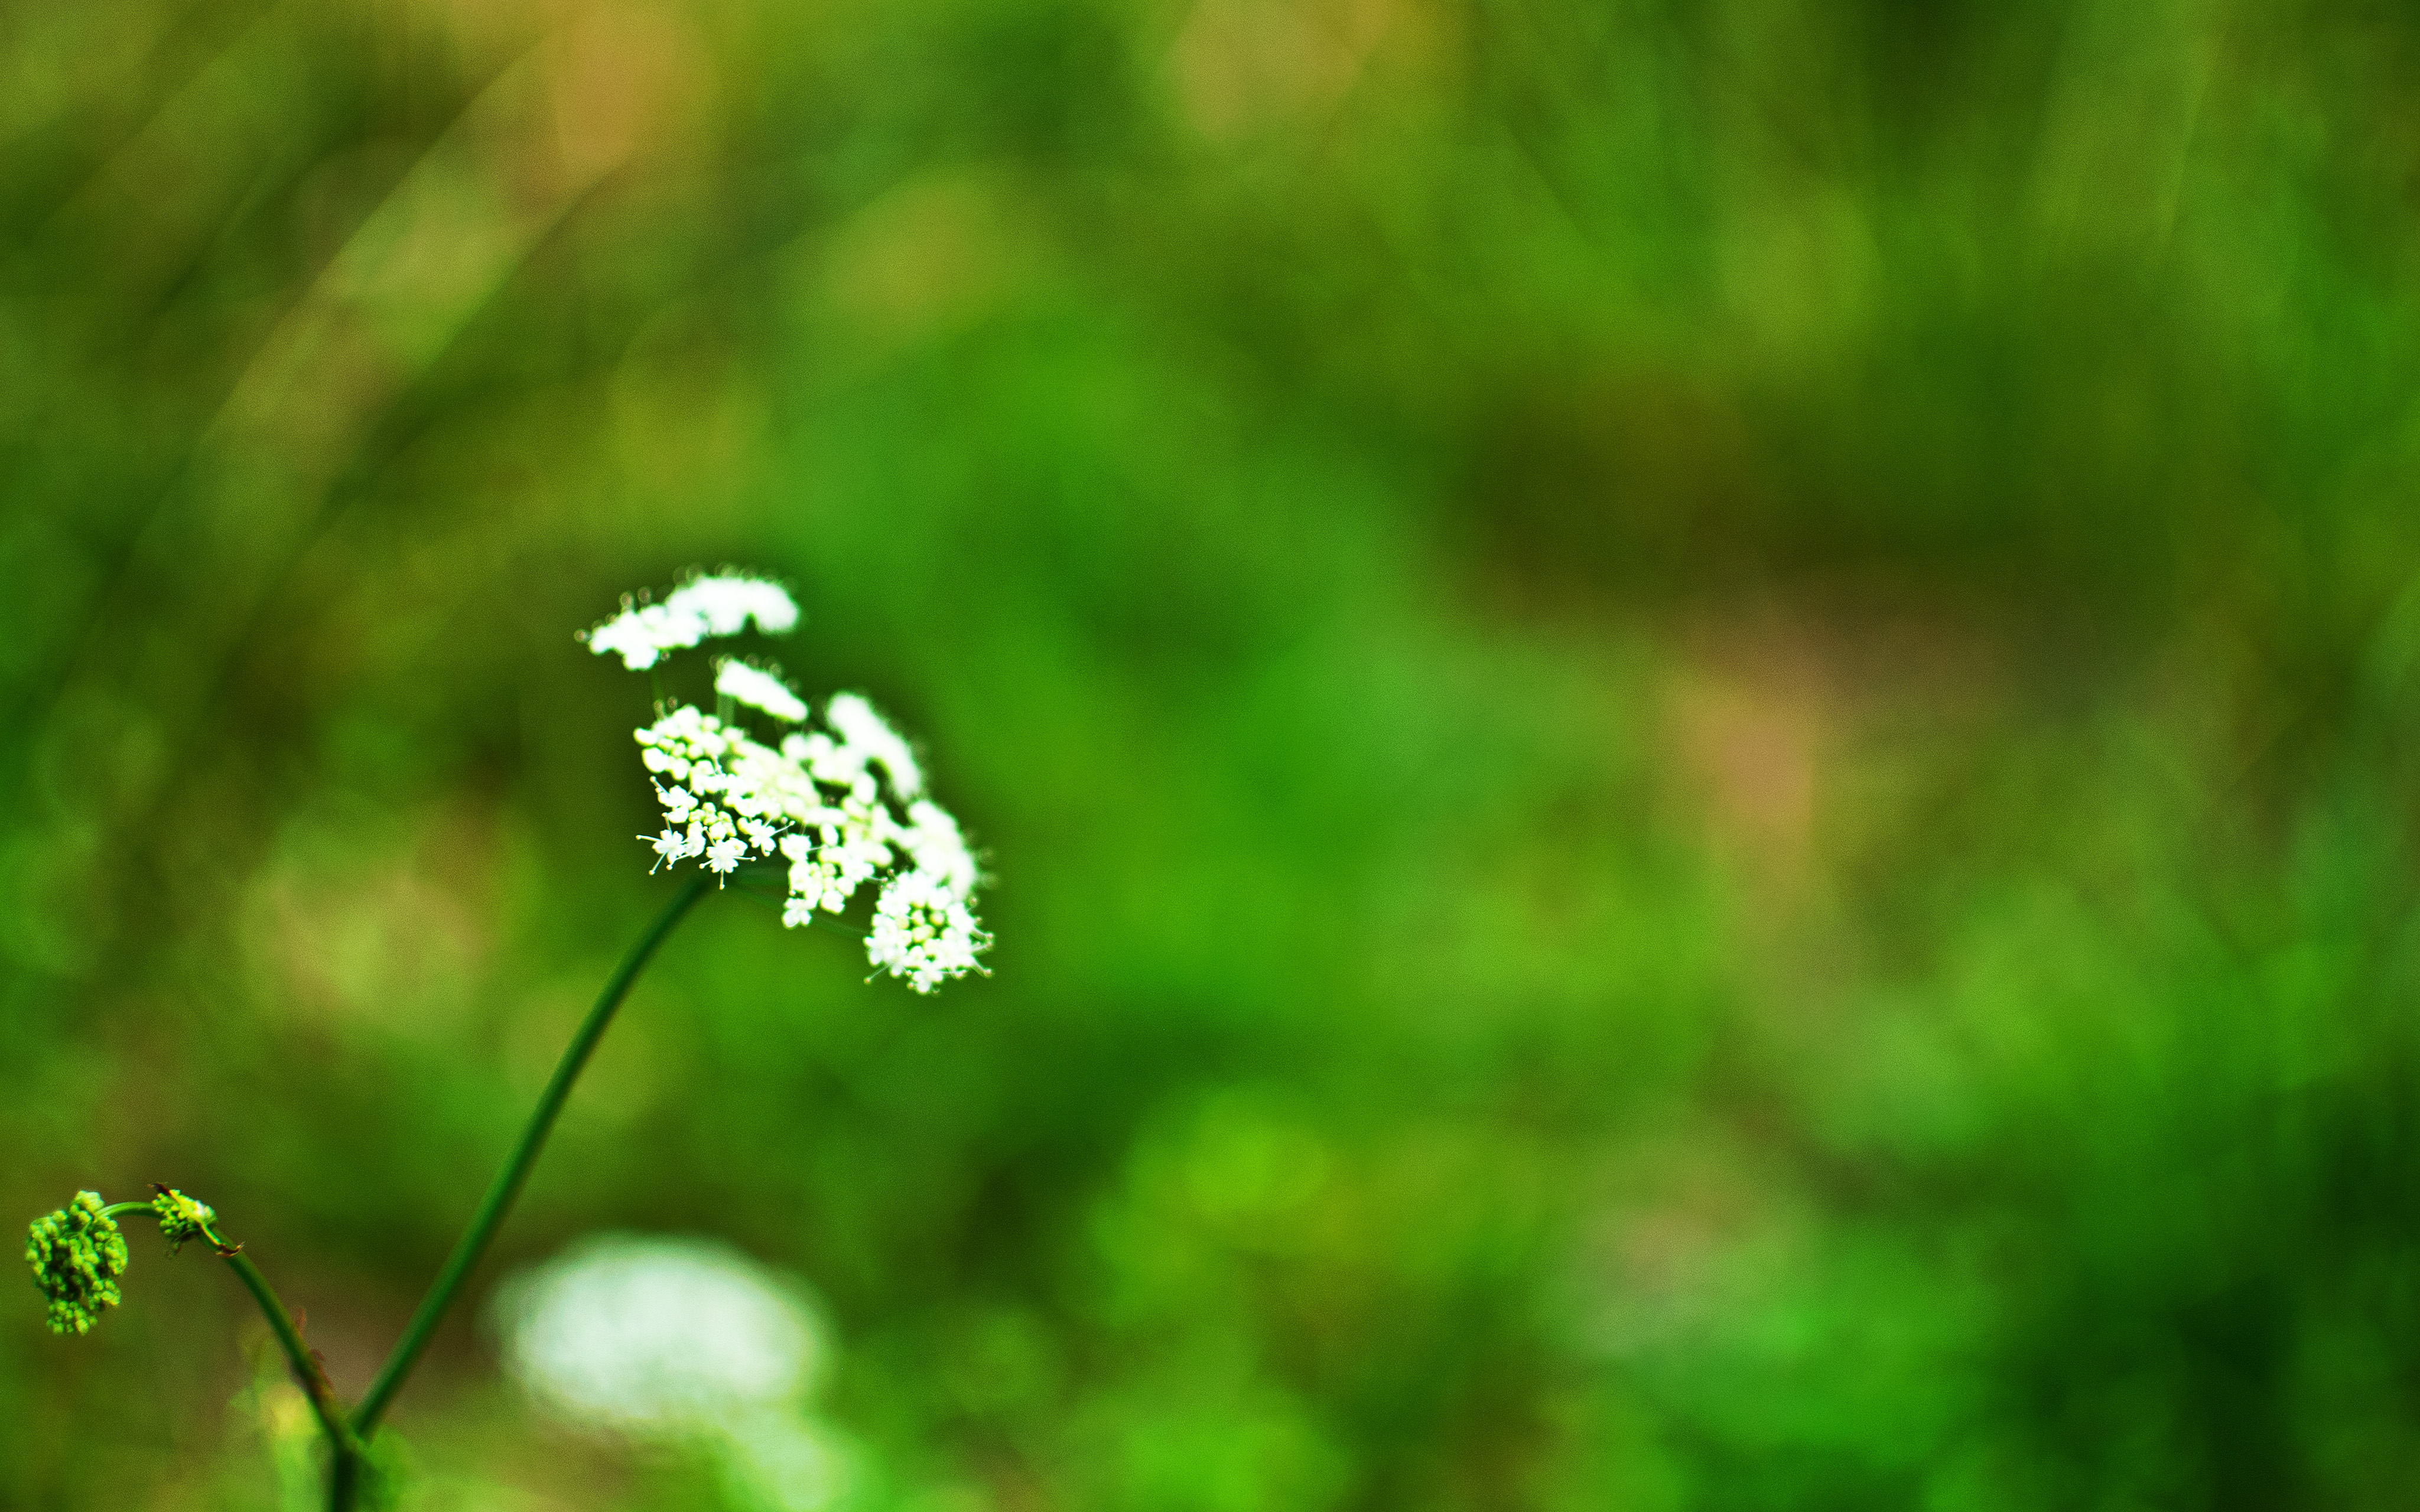 4K Resolution retina wallpaper 16:10 - Flower | Flickr - Photo ...